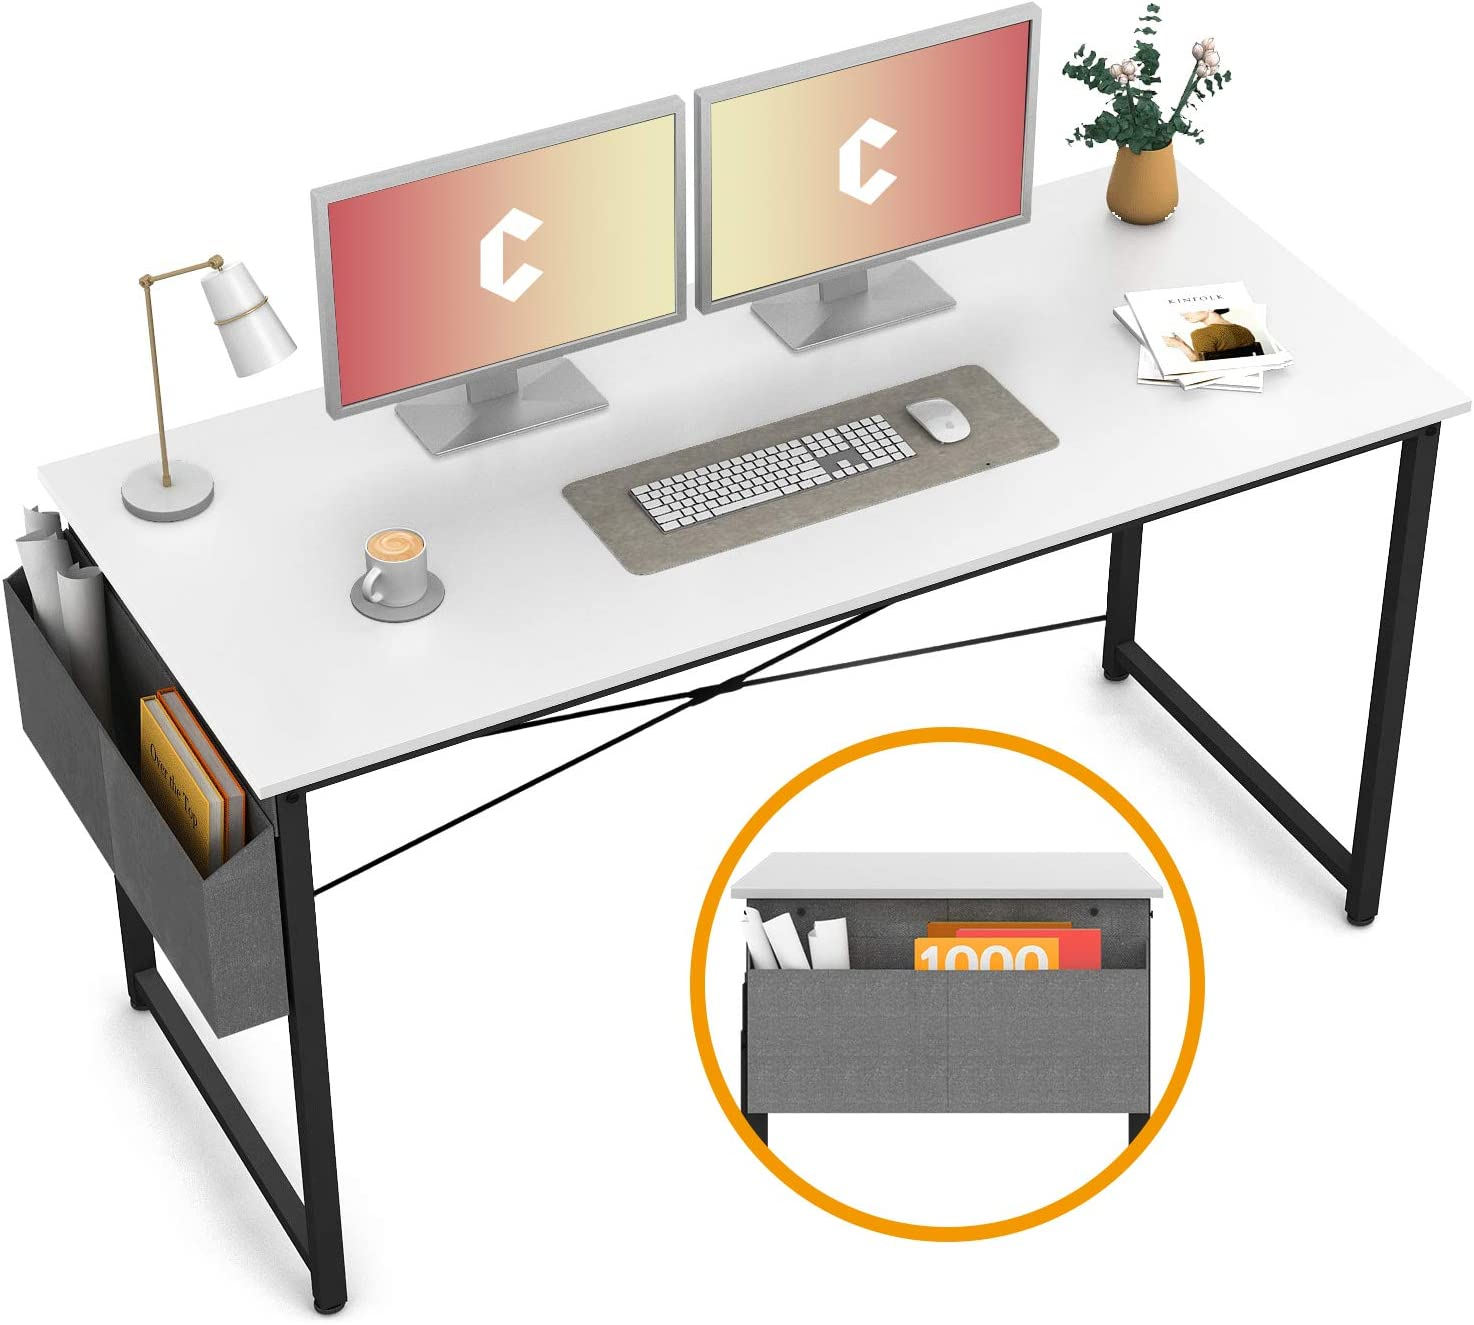 """Cubiker Computer Desk 55"""" Home Office Writing Study Desk, Modern Simple Style Laptop Table with Storage Bag, White"""